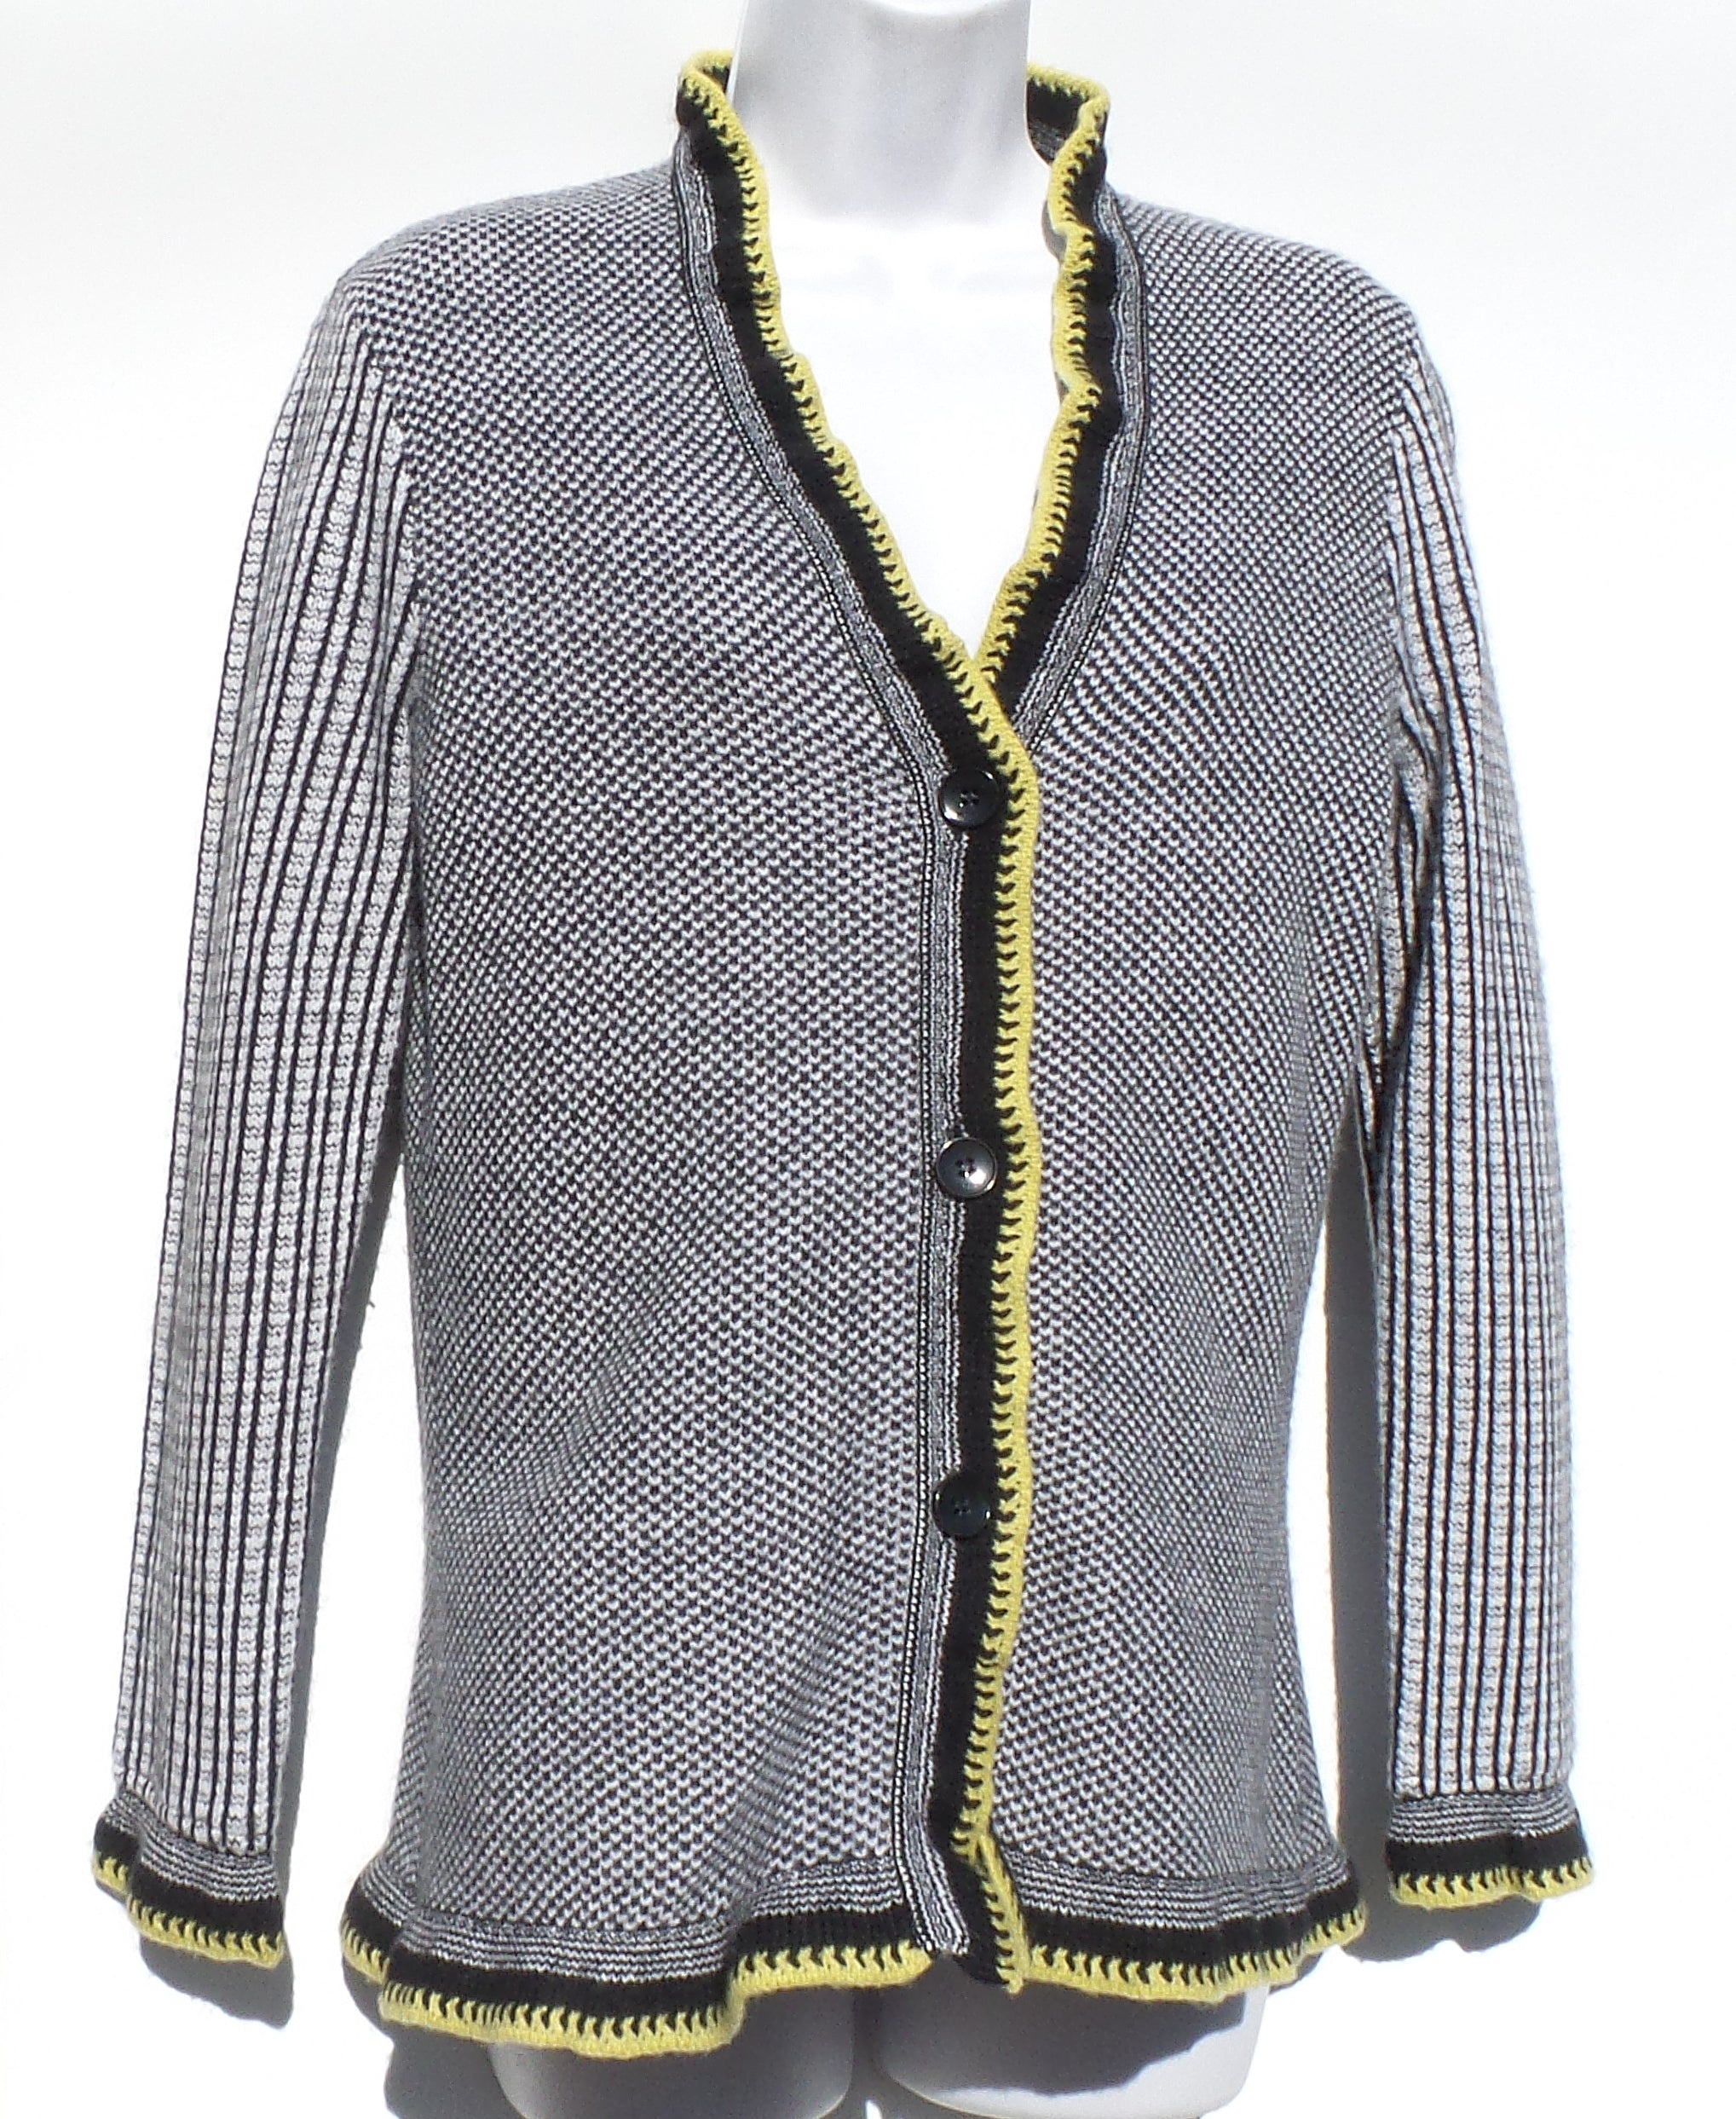 ETRO Black White Mixed Knit Citrus Yellow Lime Trim V Neck Cardigan Sweater 46